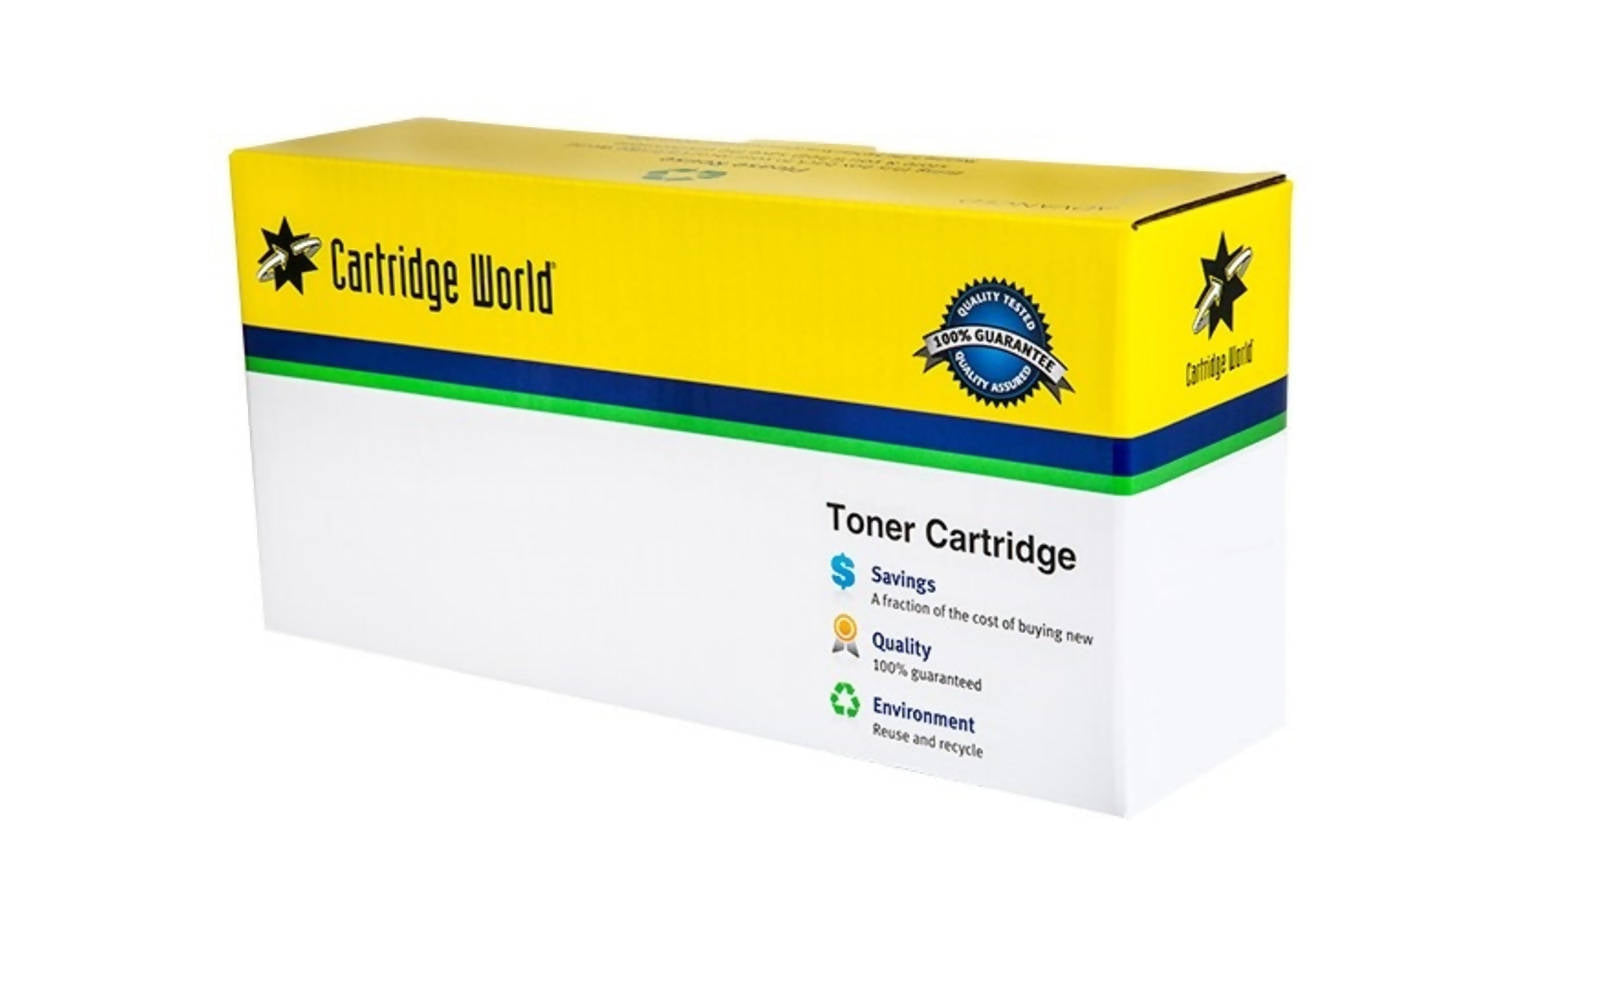 Cartridge World Replacement for HP #80A CF280A Black Toner Cartridge (CWH-CF280A) - 2700 Pages